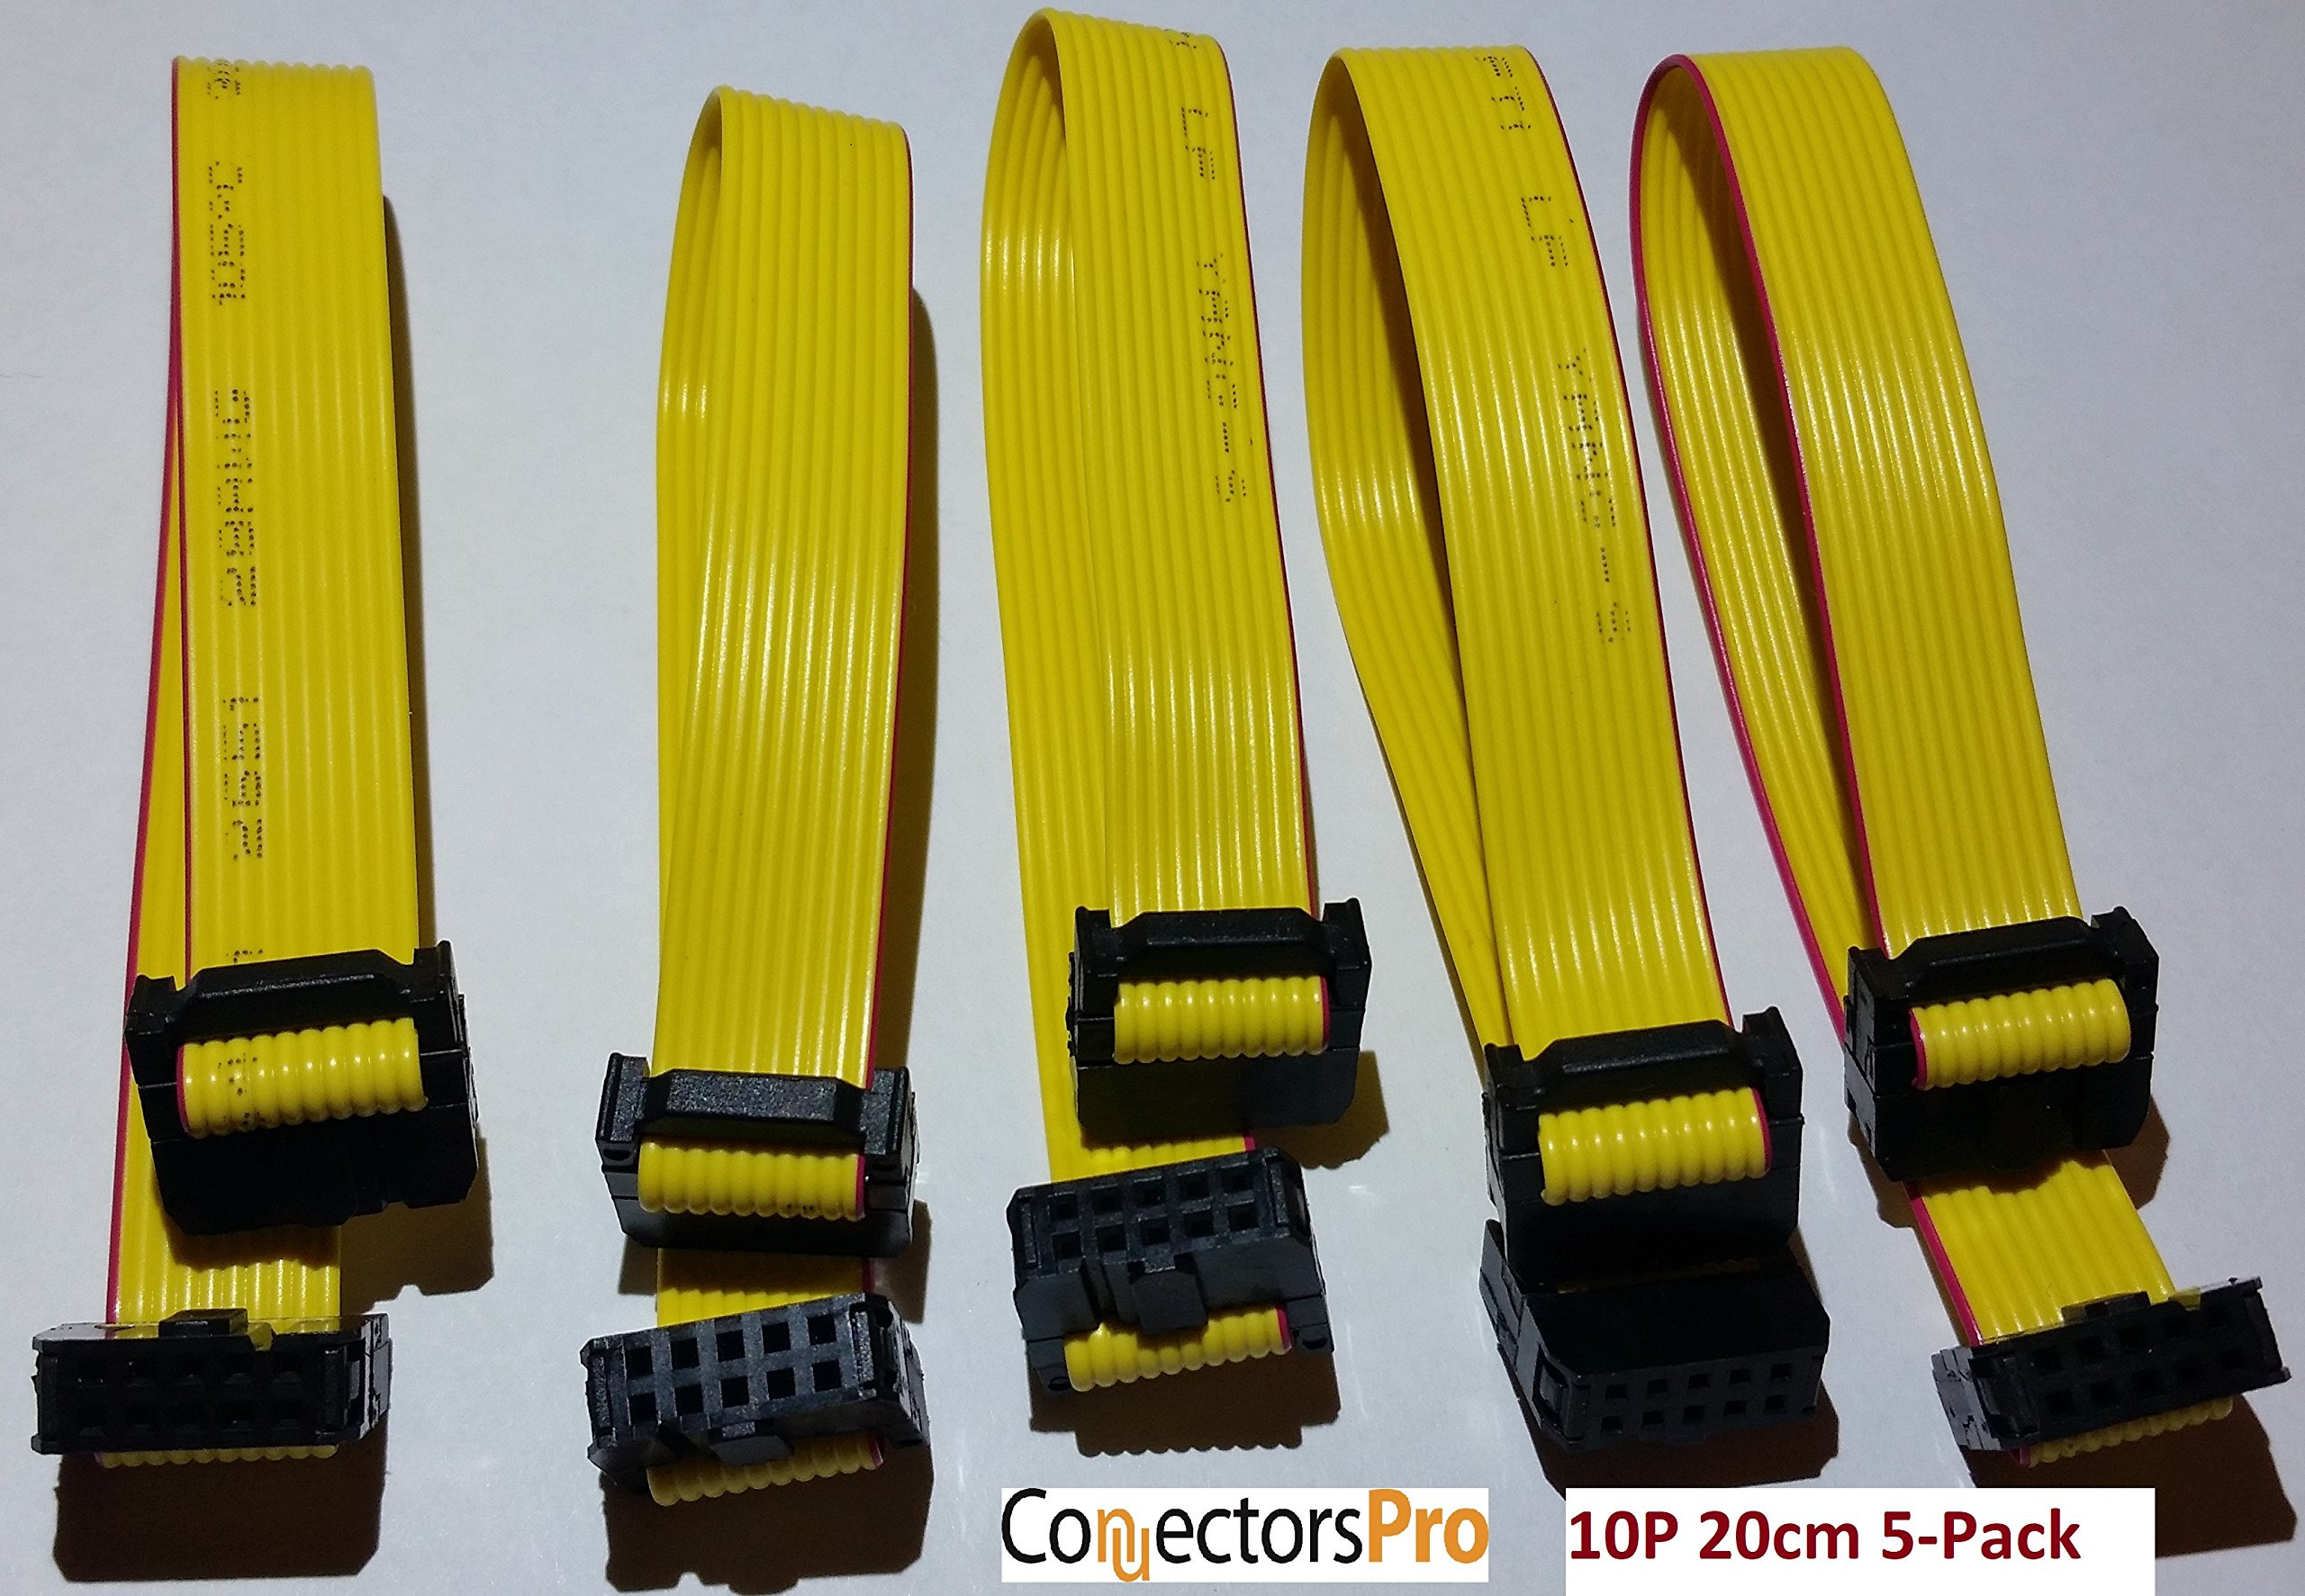 """Pc Accessories - Connectors Pro Length 20cm to 80cm 2-Pack and 5-Pack 10-Pin 1.27mm 0.5"""" Pitch Yellow Flat Ribbon Cable F/F IDC 2x5 10P, with 2.54mm FC 10 Pins Female to Female (10P-20cm-5PK)"""